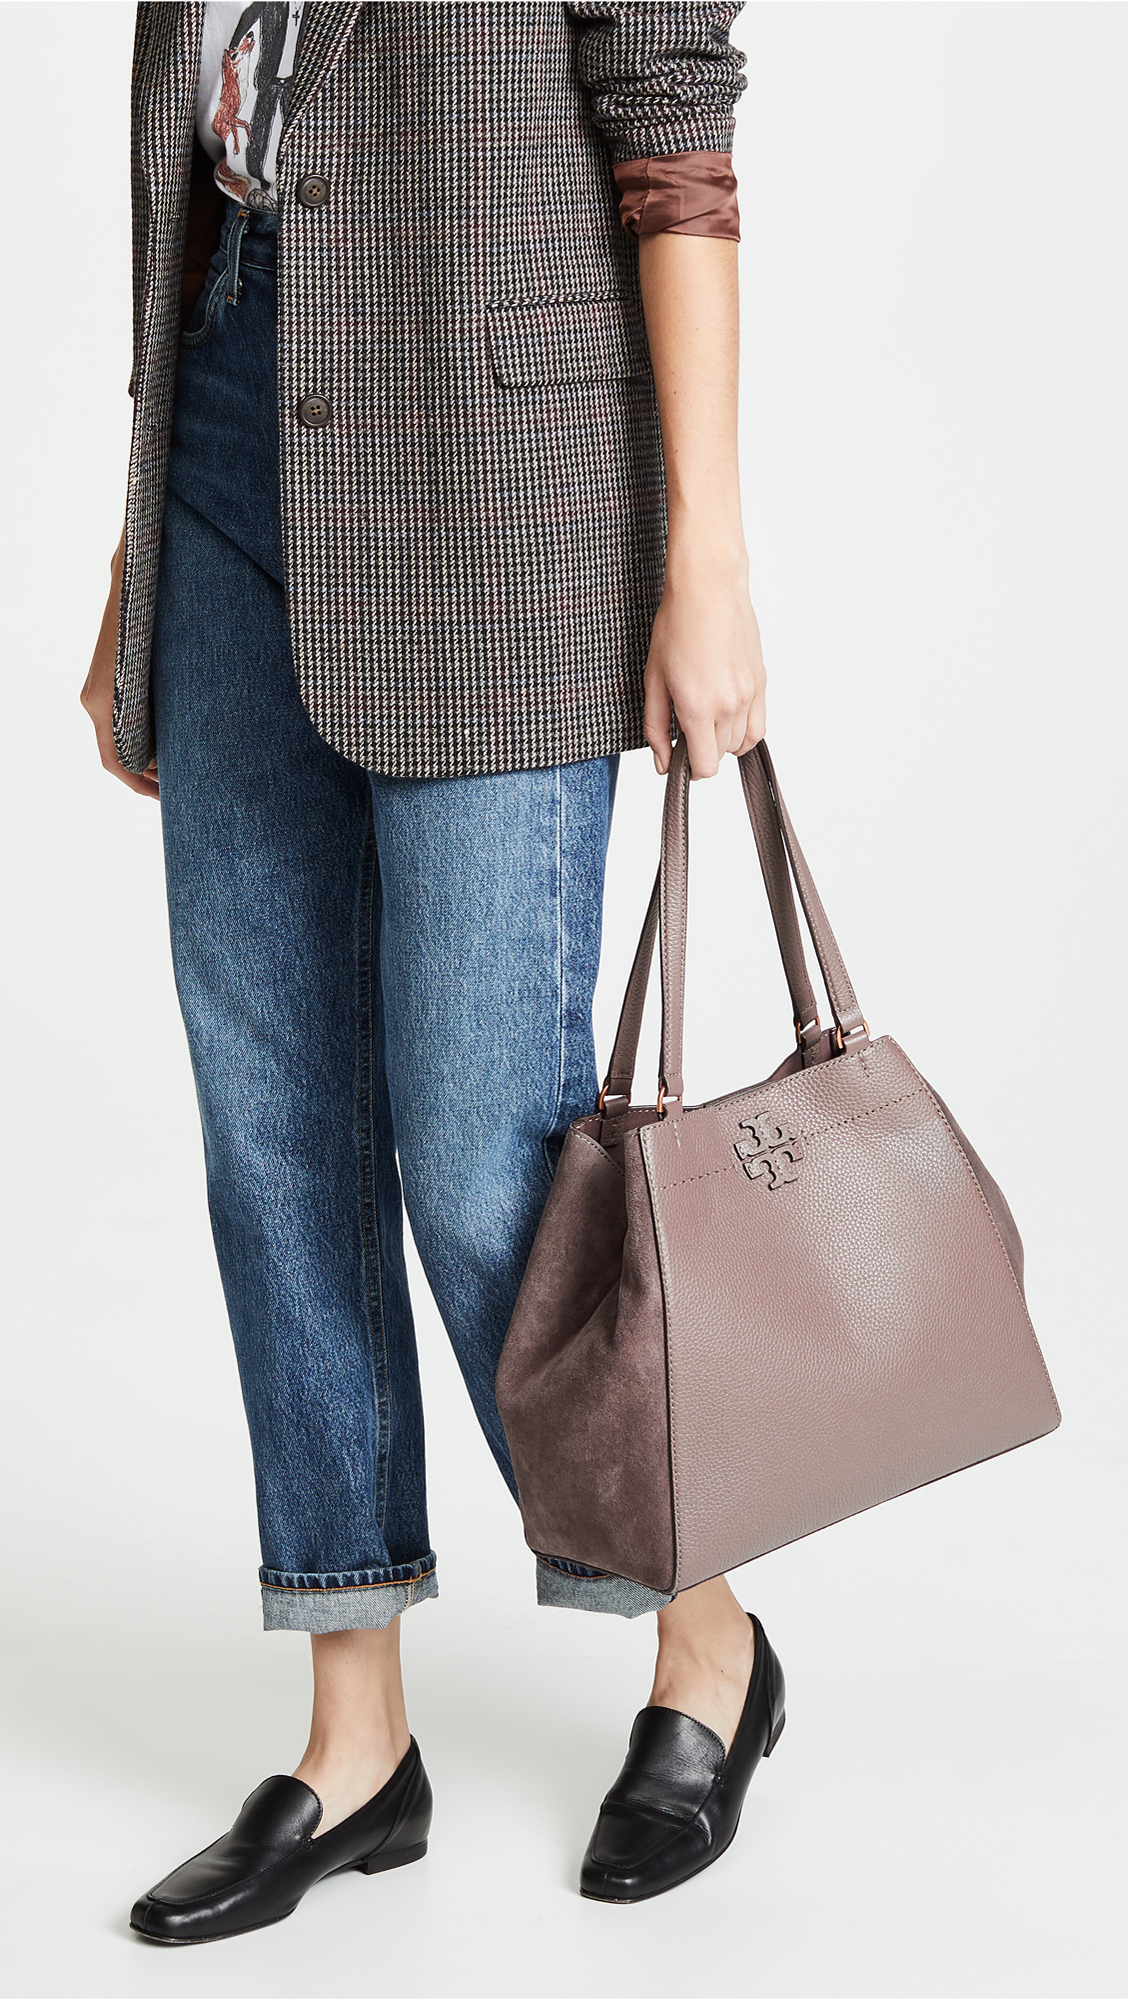 80395c904044 Tory Burch Mcgraw Mixed Media Carryall